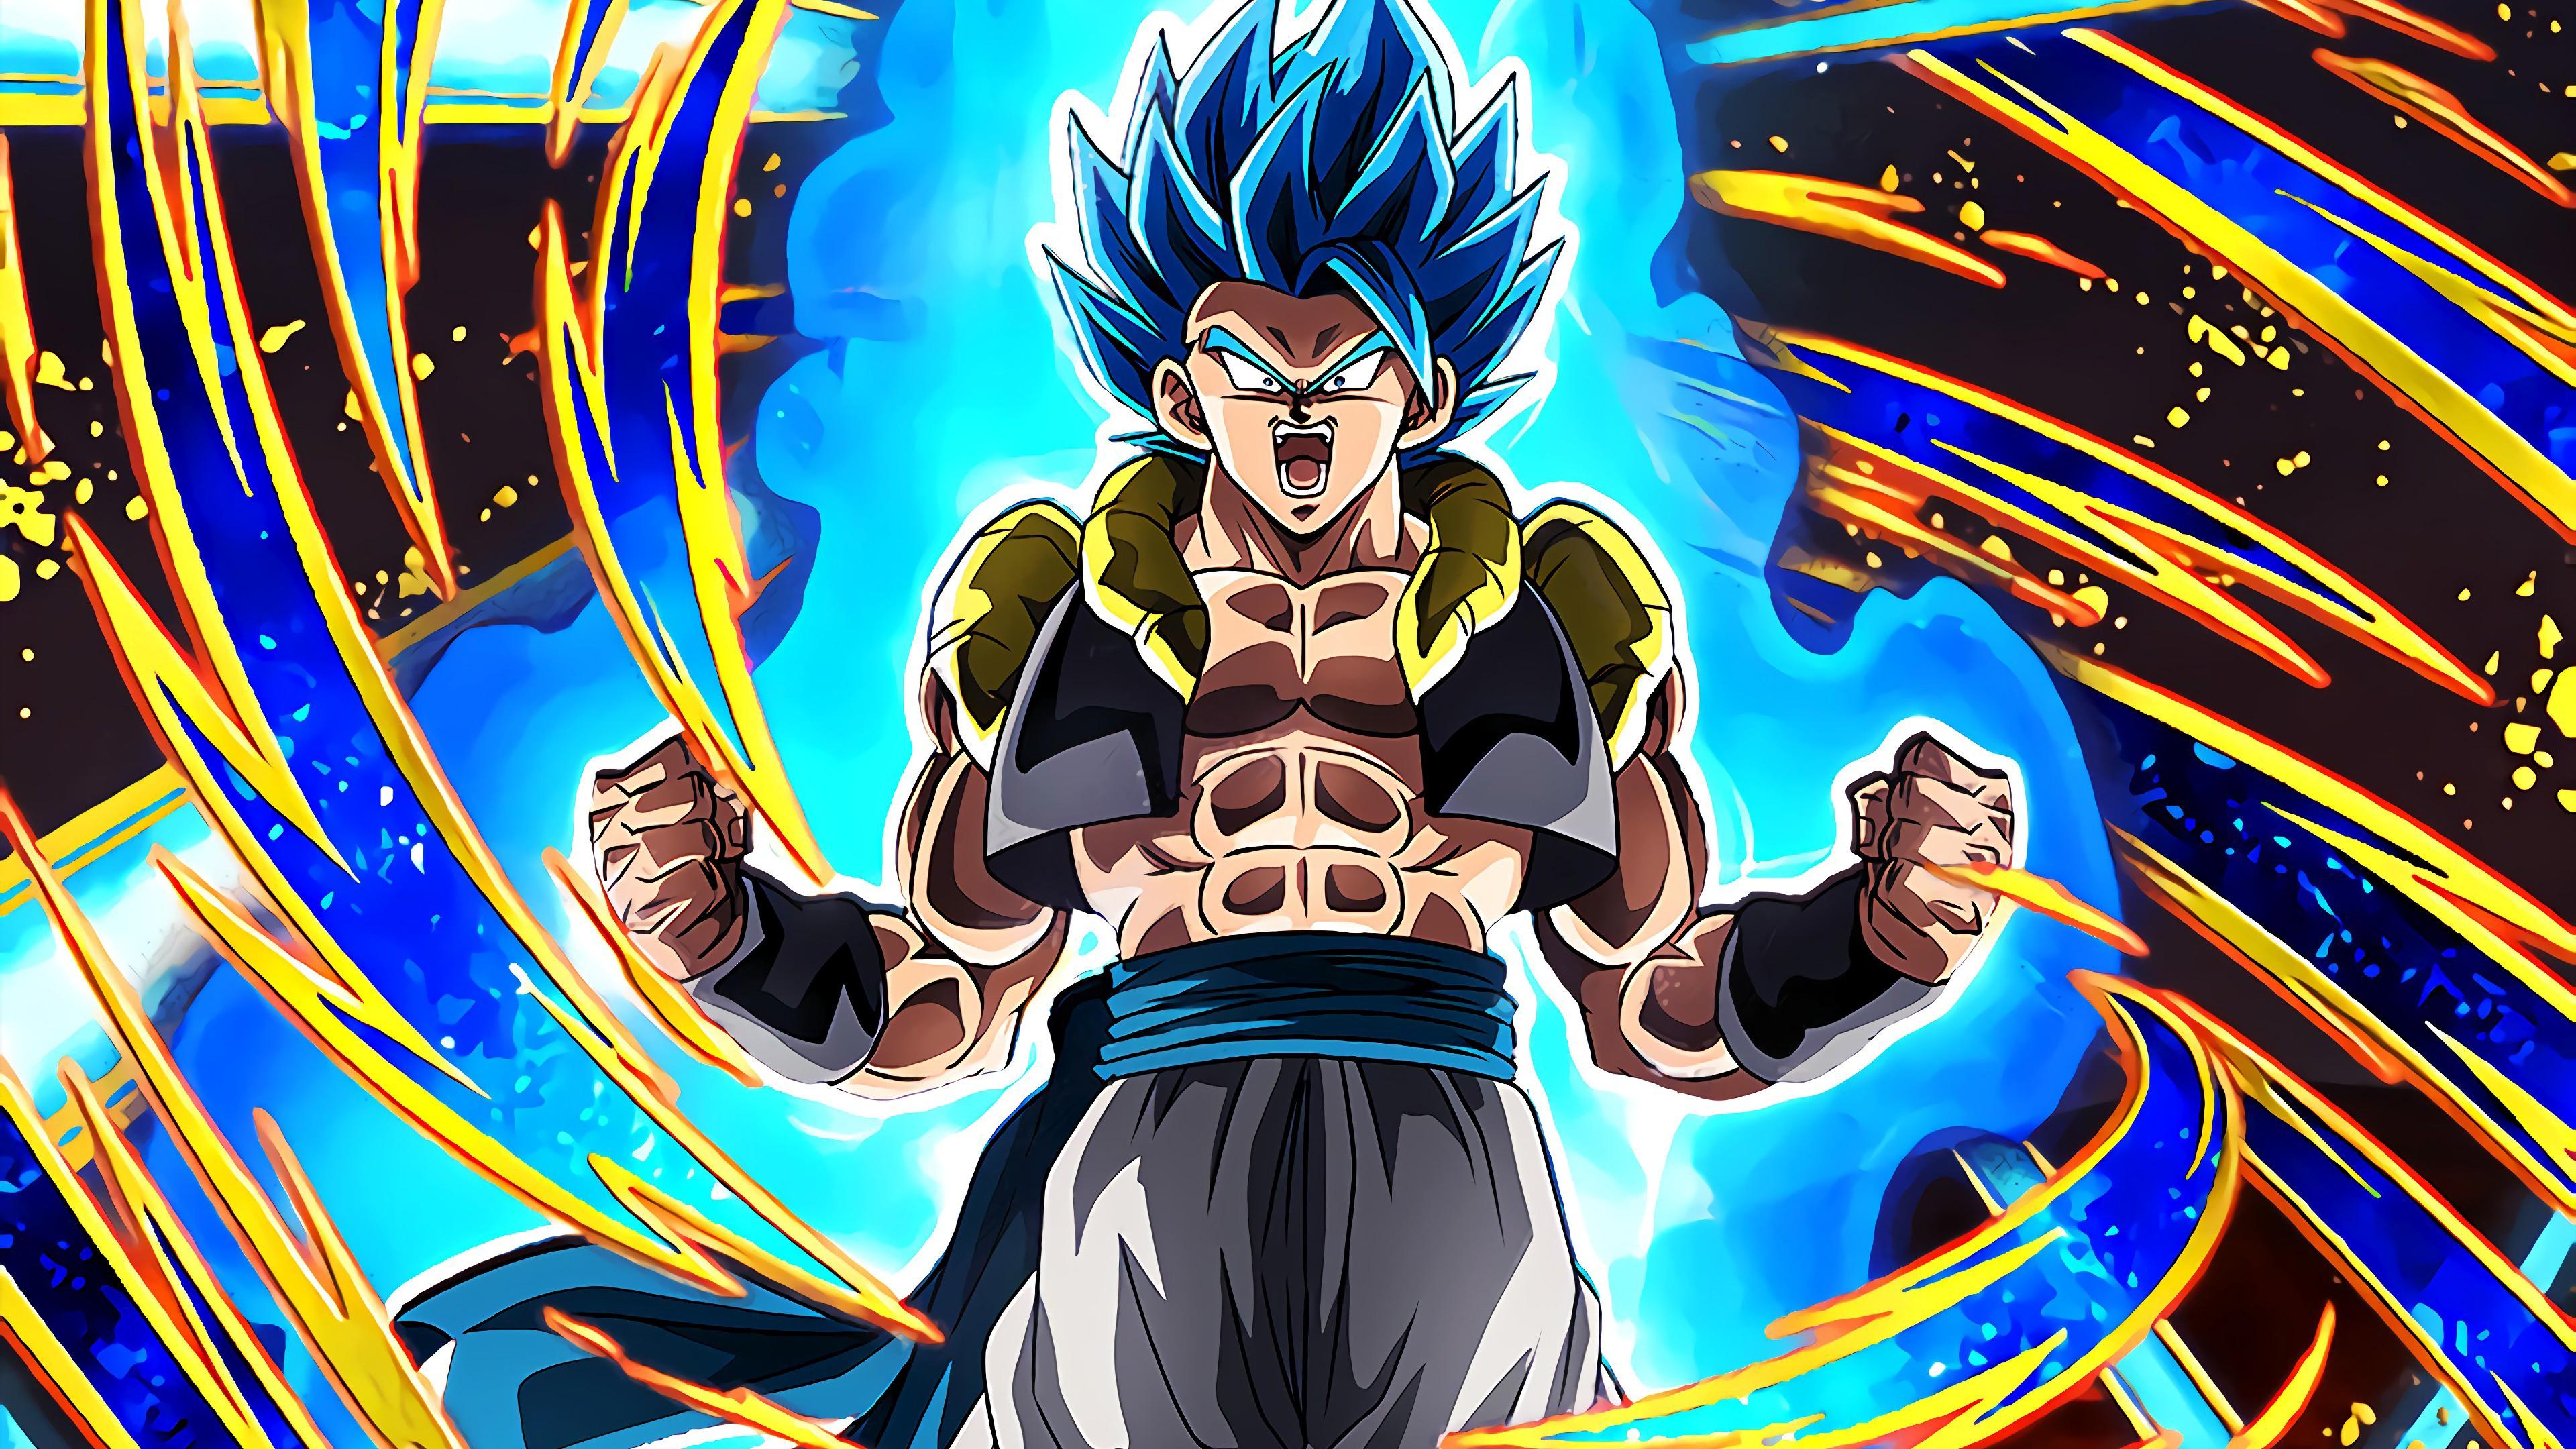 Gogeta Super Saiyan Blue Dragon Ball Super Anime Fondo De